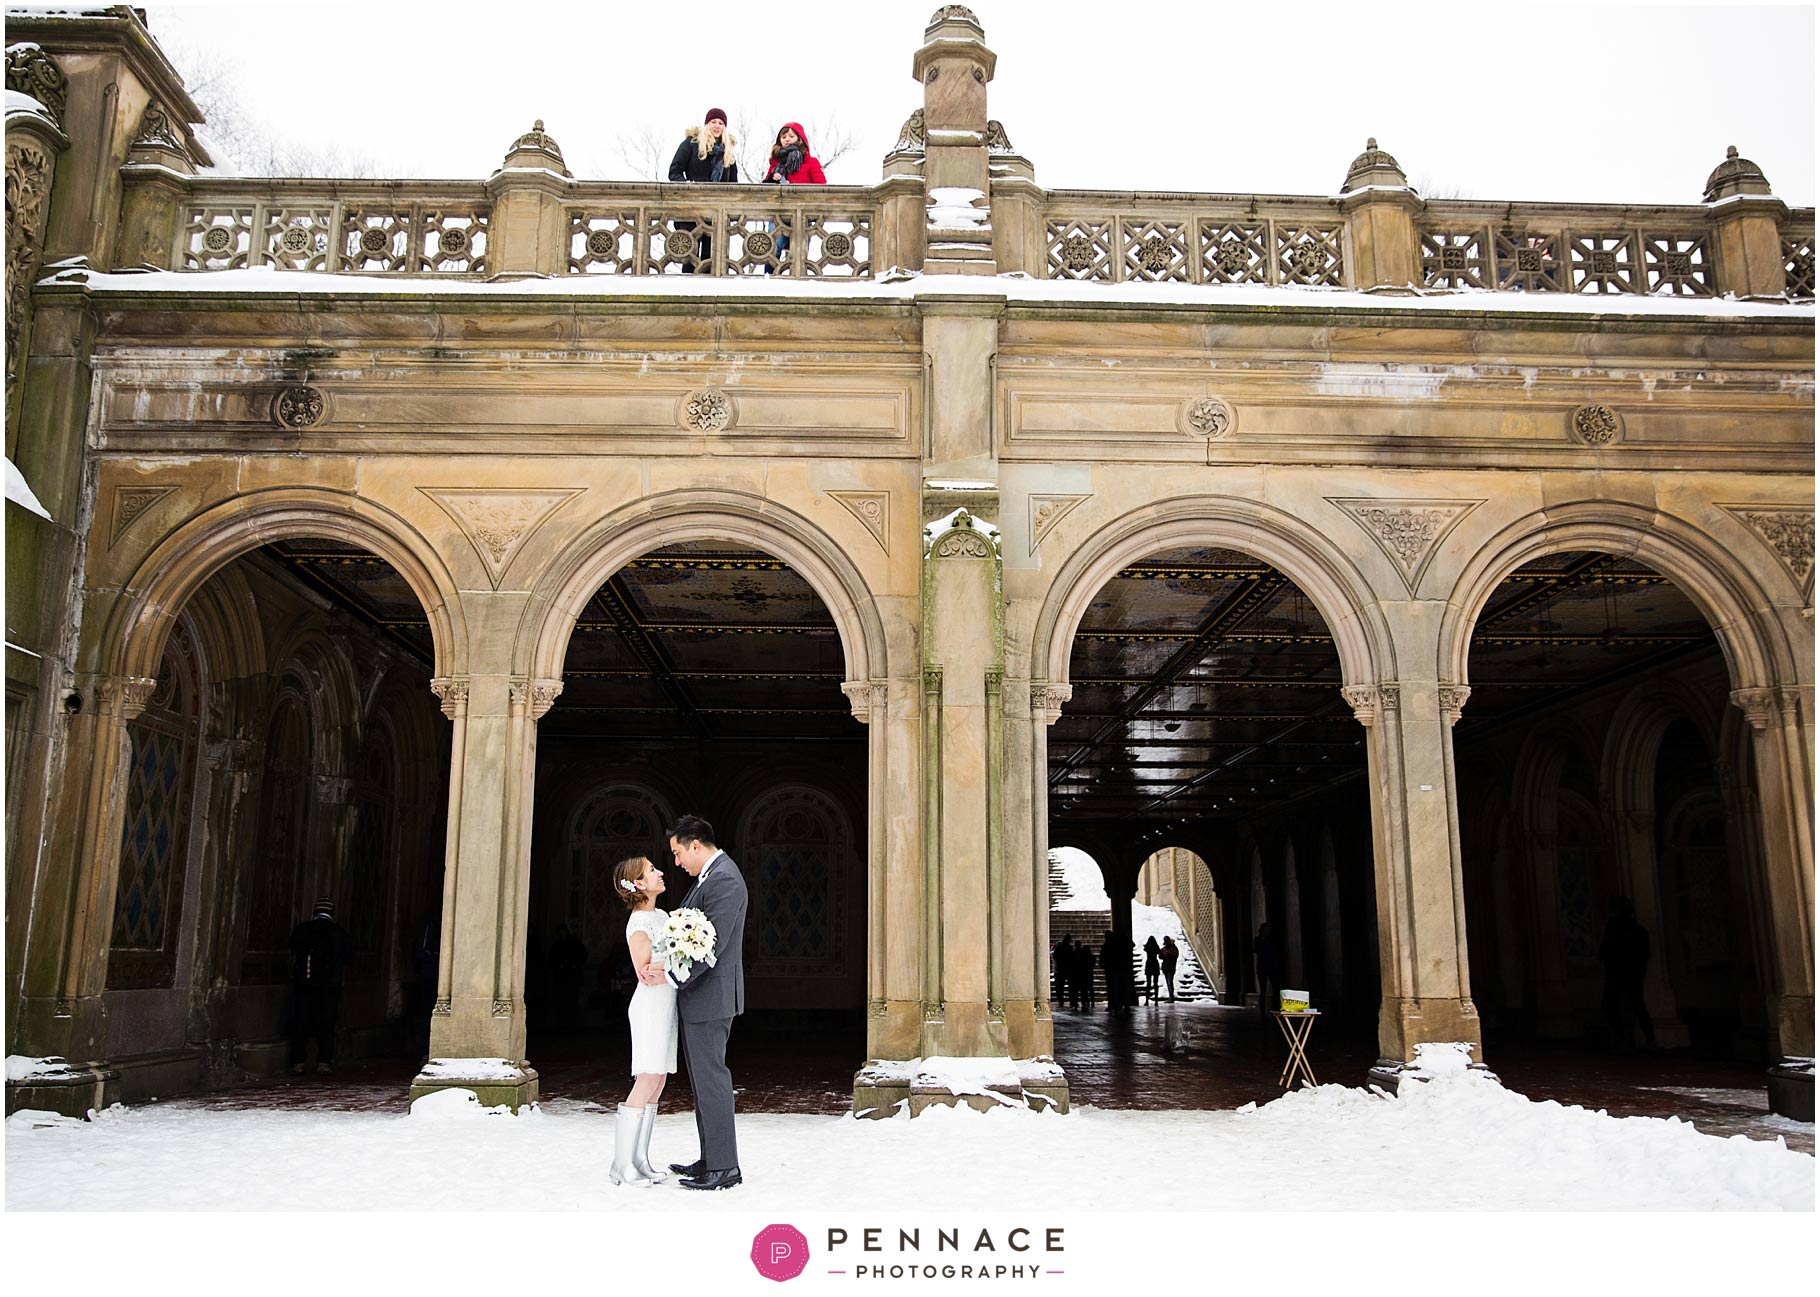 Best places to get married in central park central park for Best places to go in central park